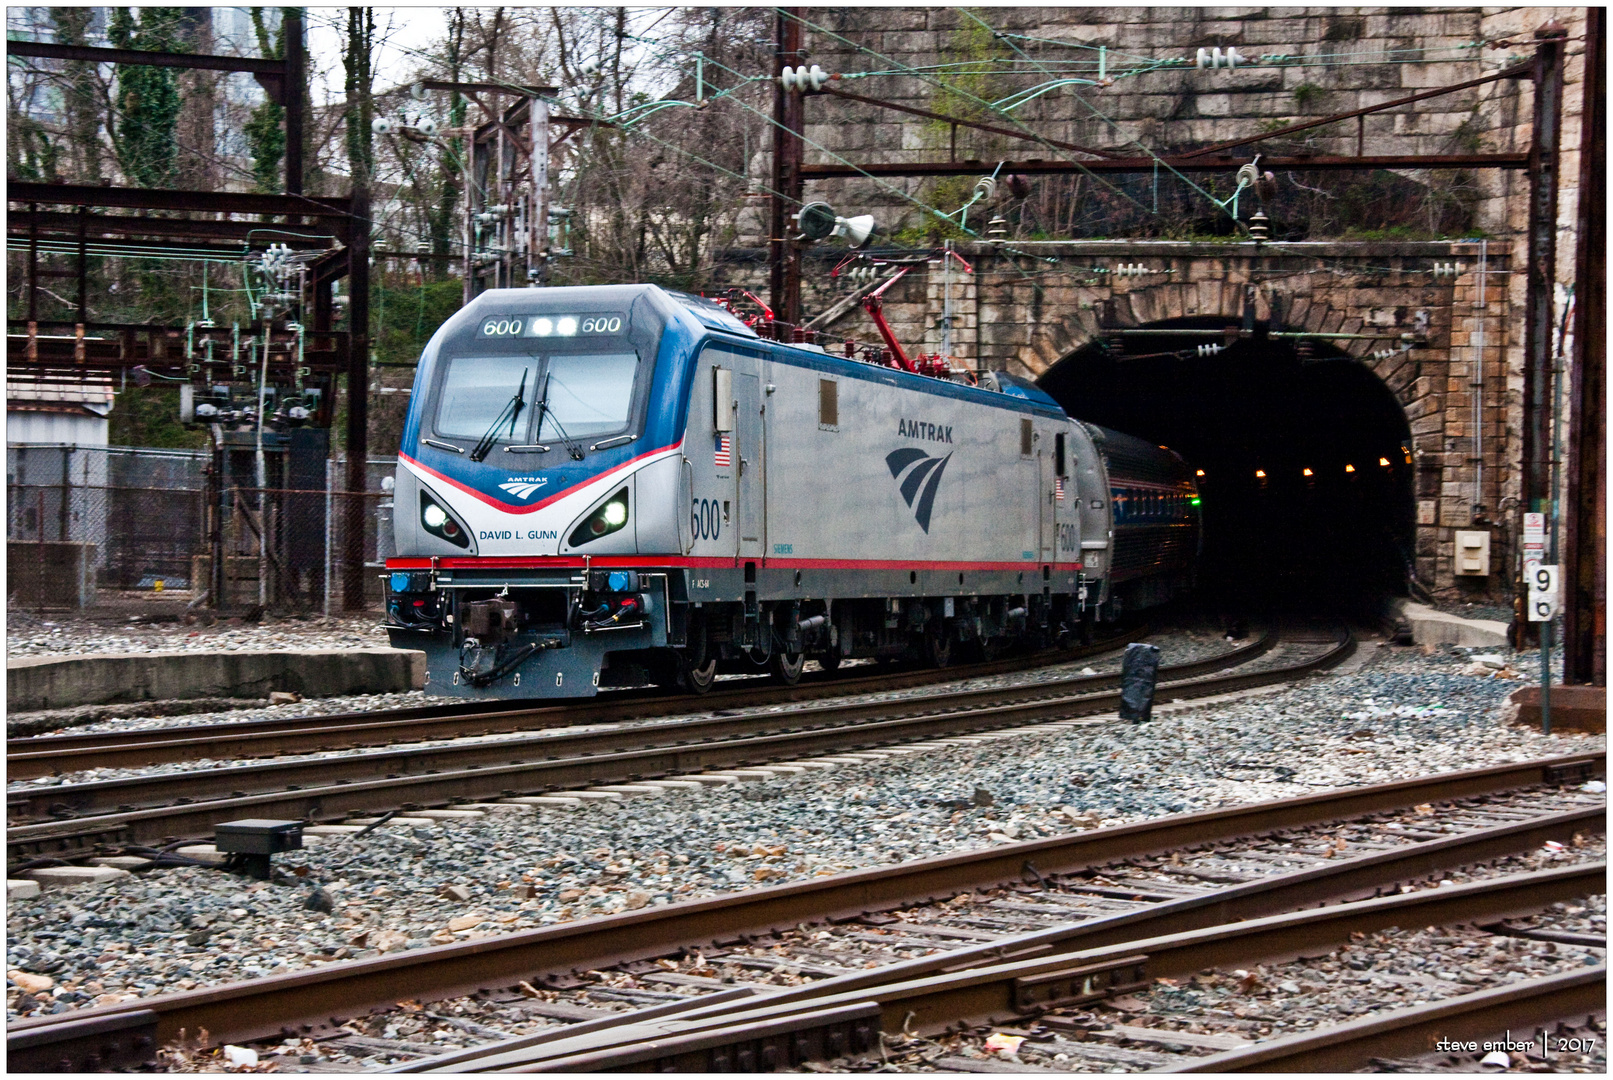 Amtrak ACS-64 Sprinter Emerges from Tunnel on Approach to Baltimore Penn Station - No. 2